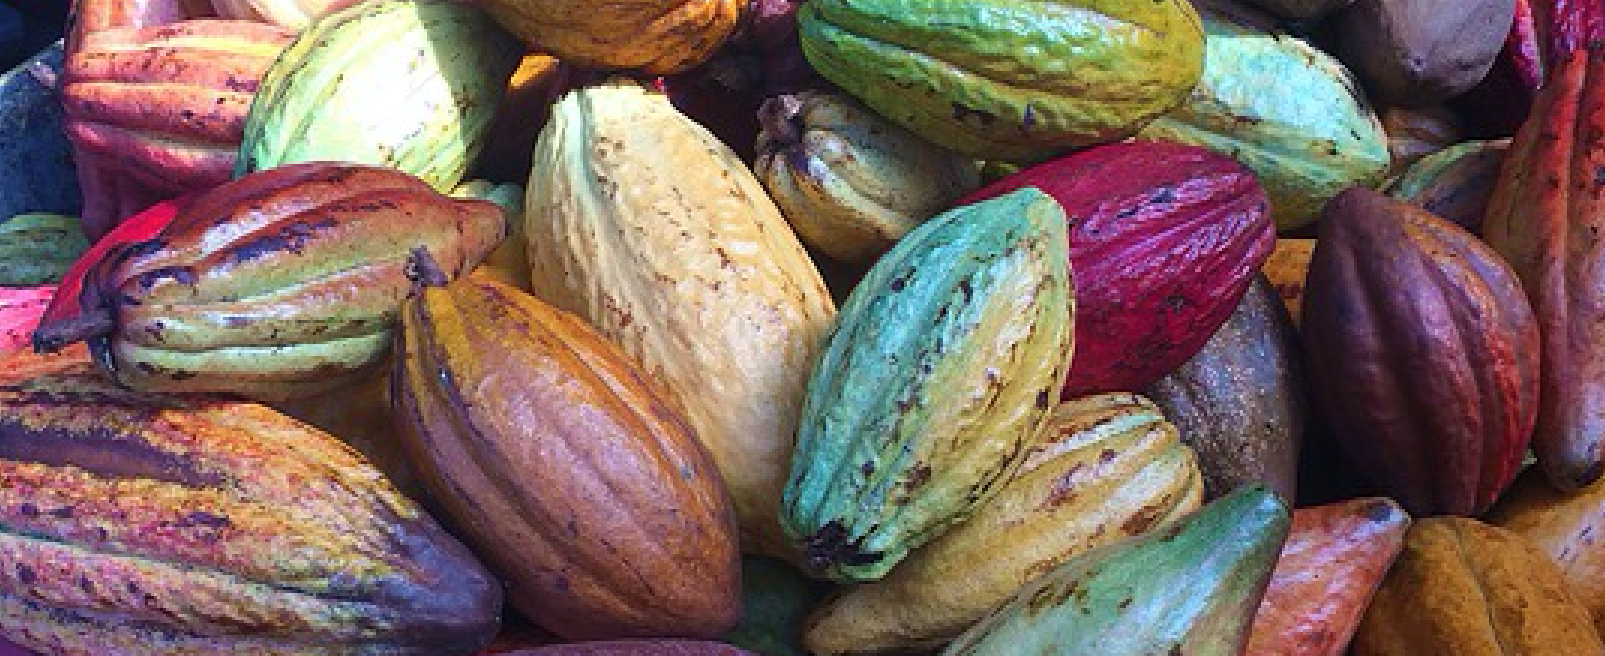 Cacao fruit of different colors